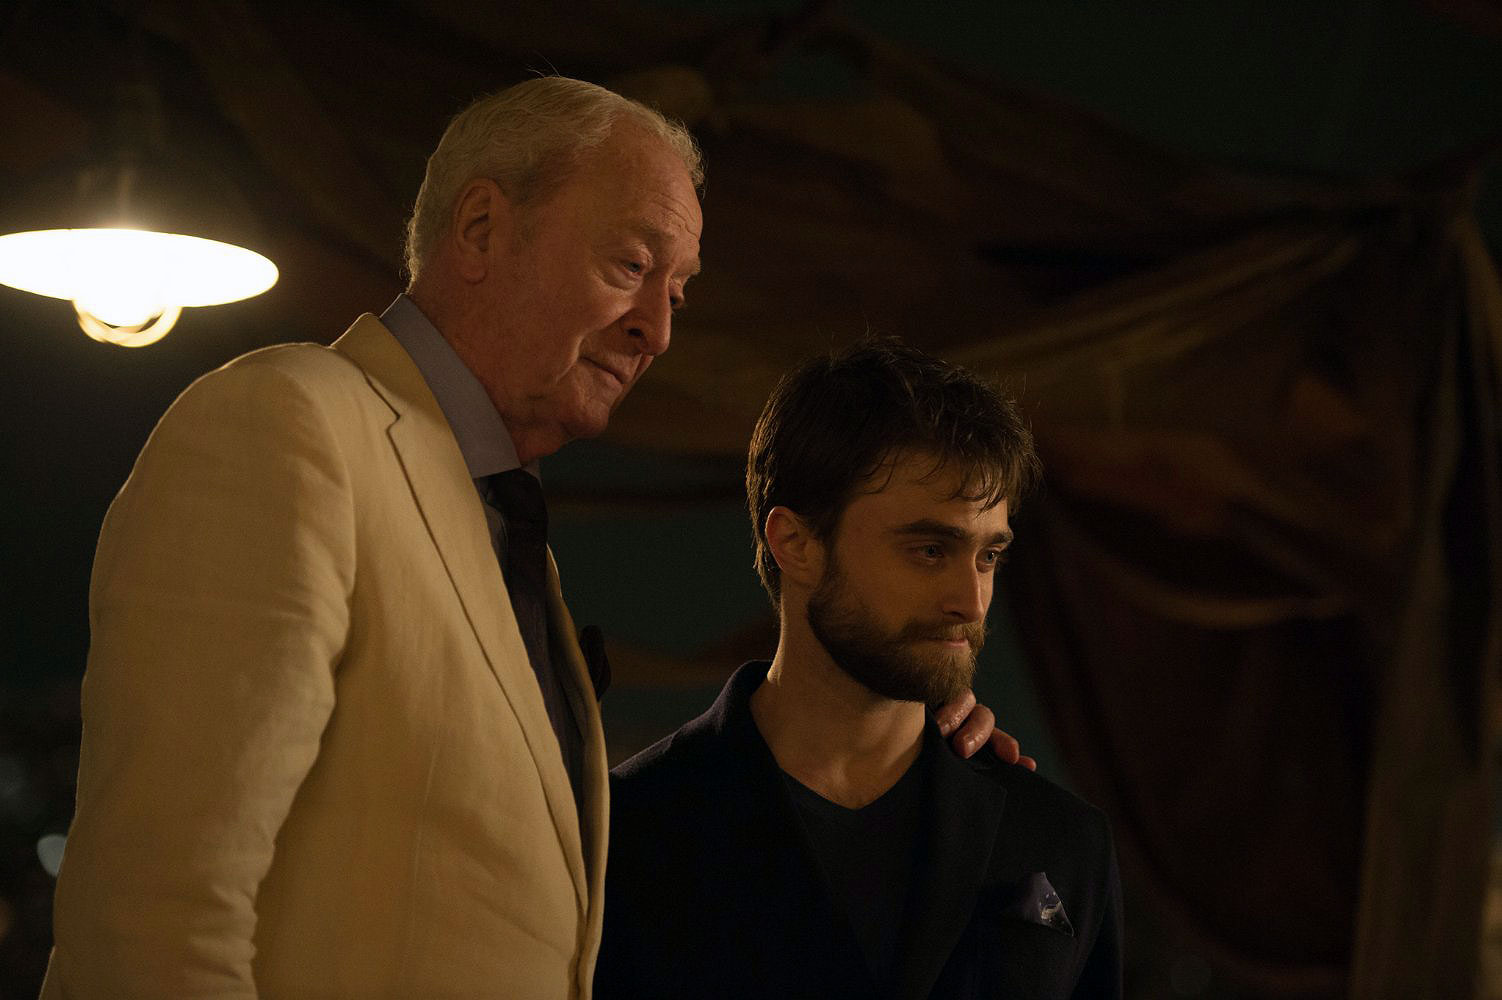 Michael Caine and Daniel Radcliffe in Now You See Me 2